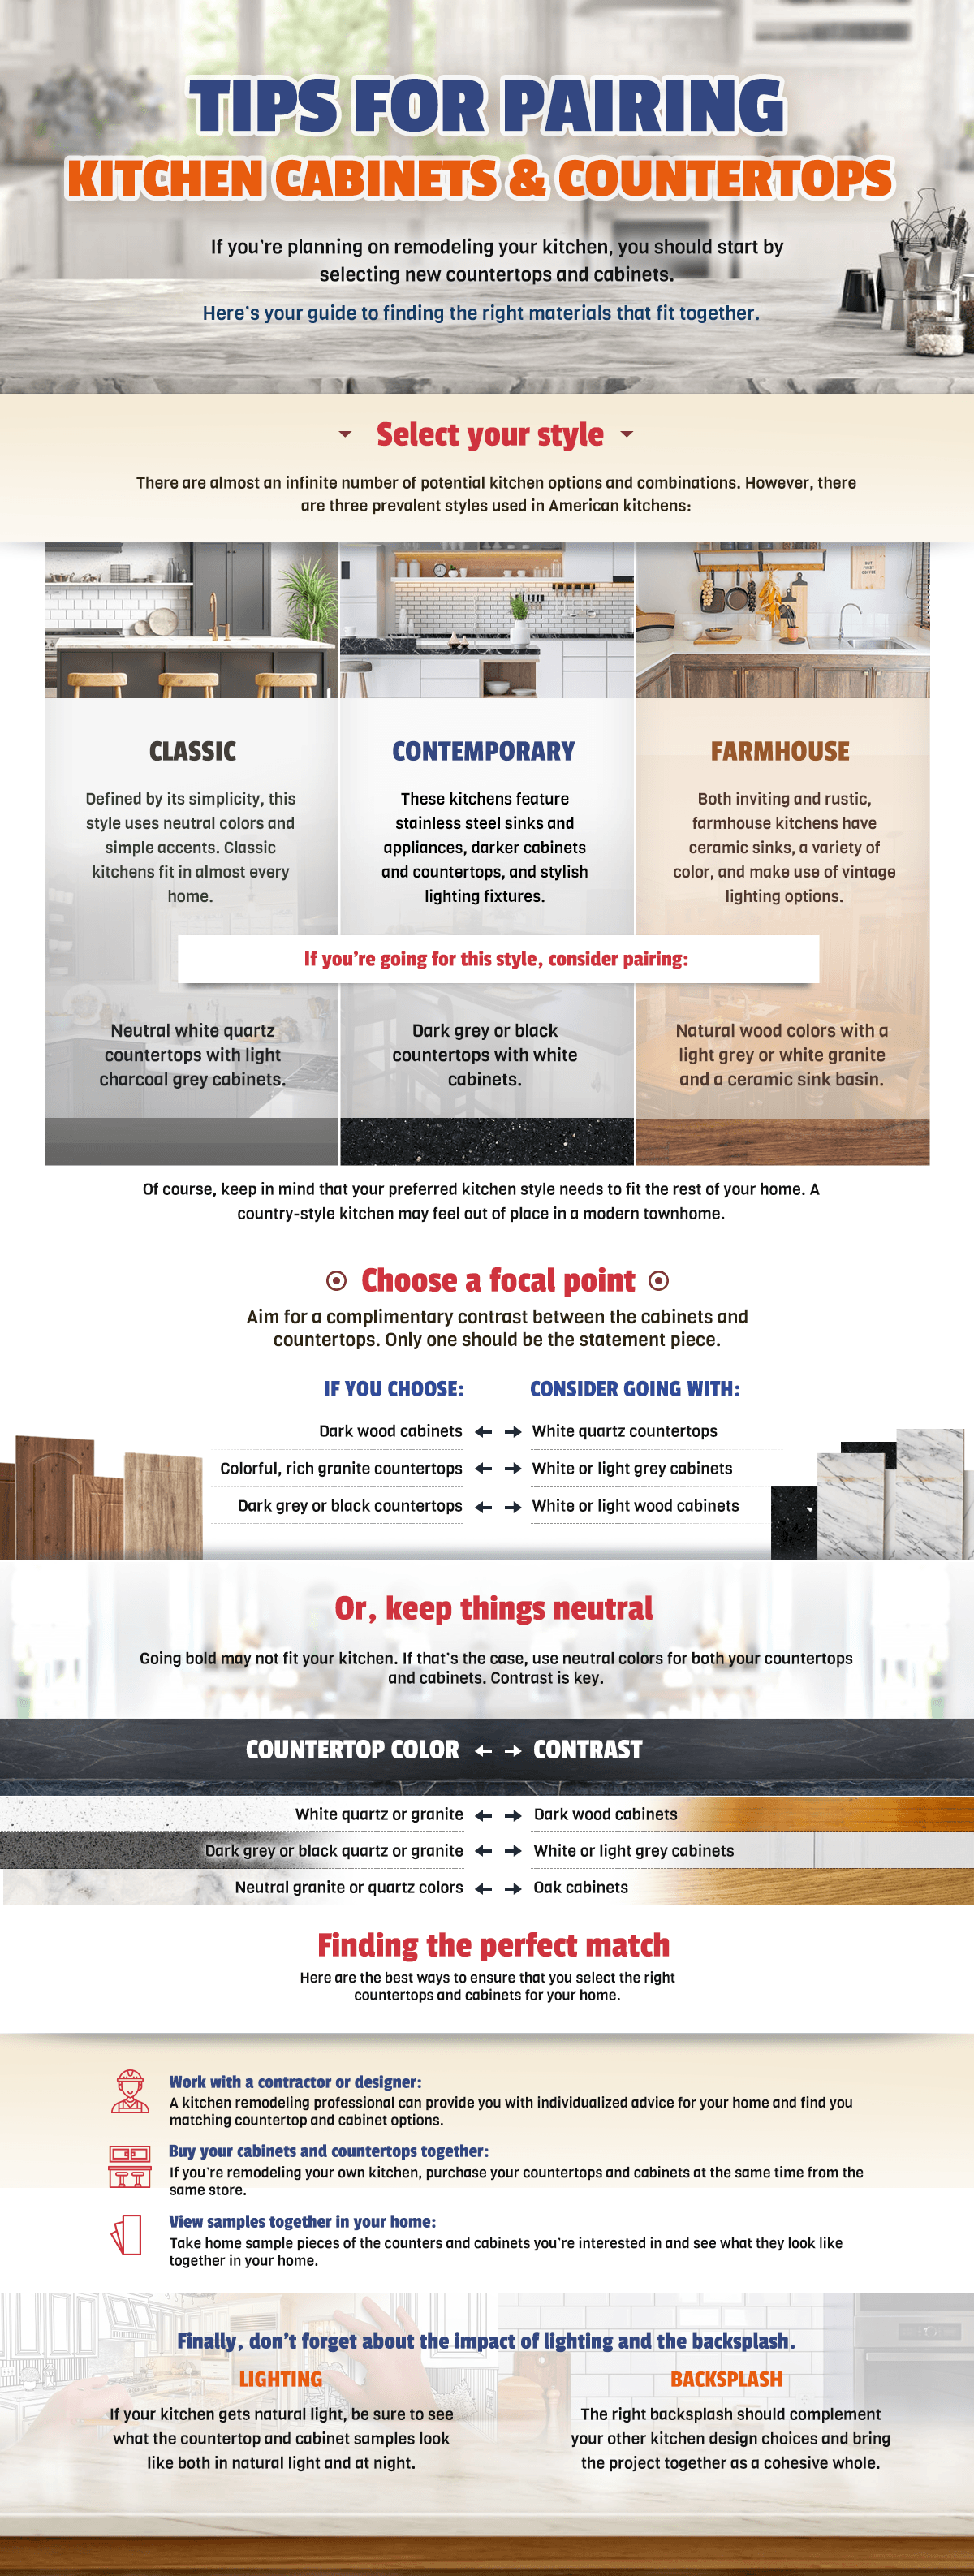 tips for pairing kitchen cabinets infographic